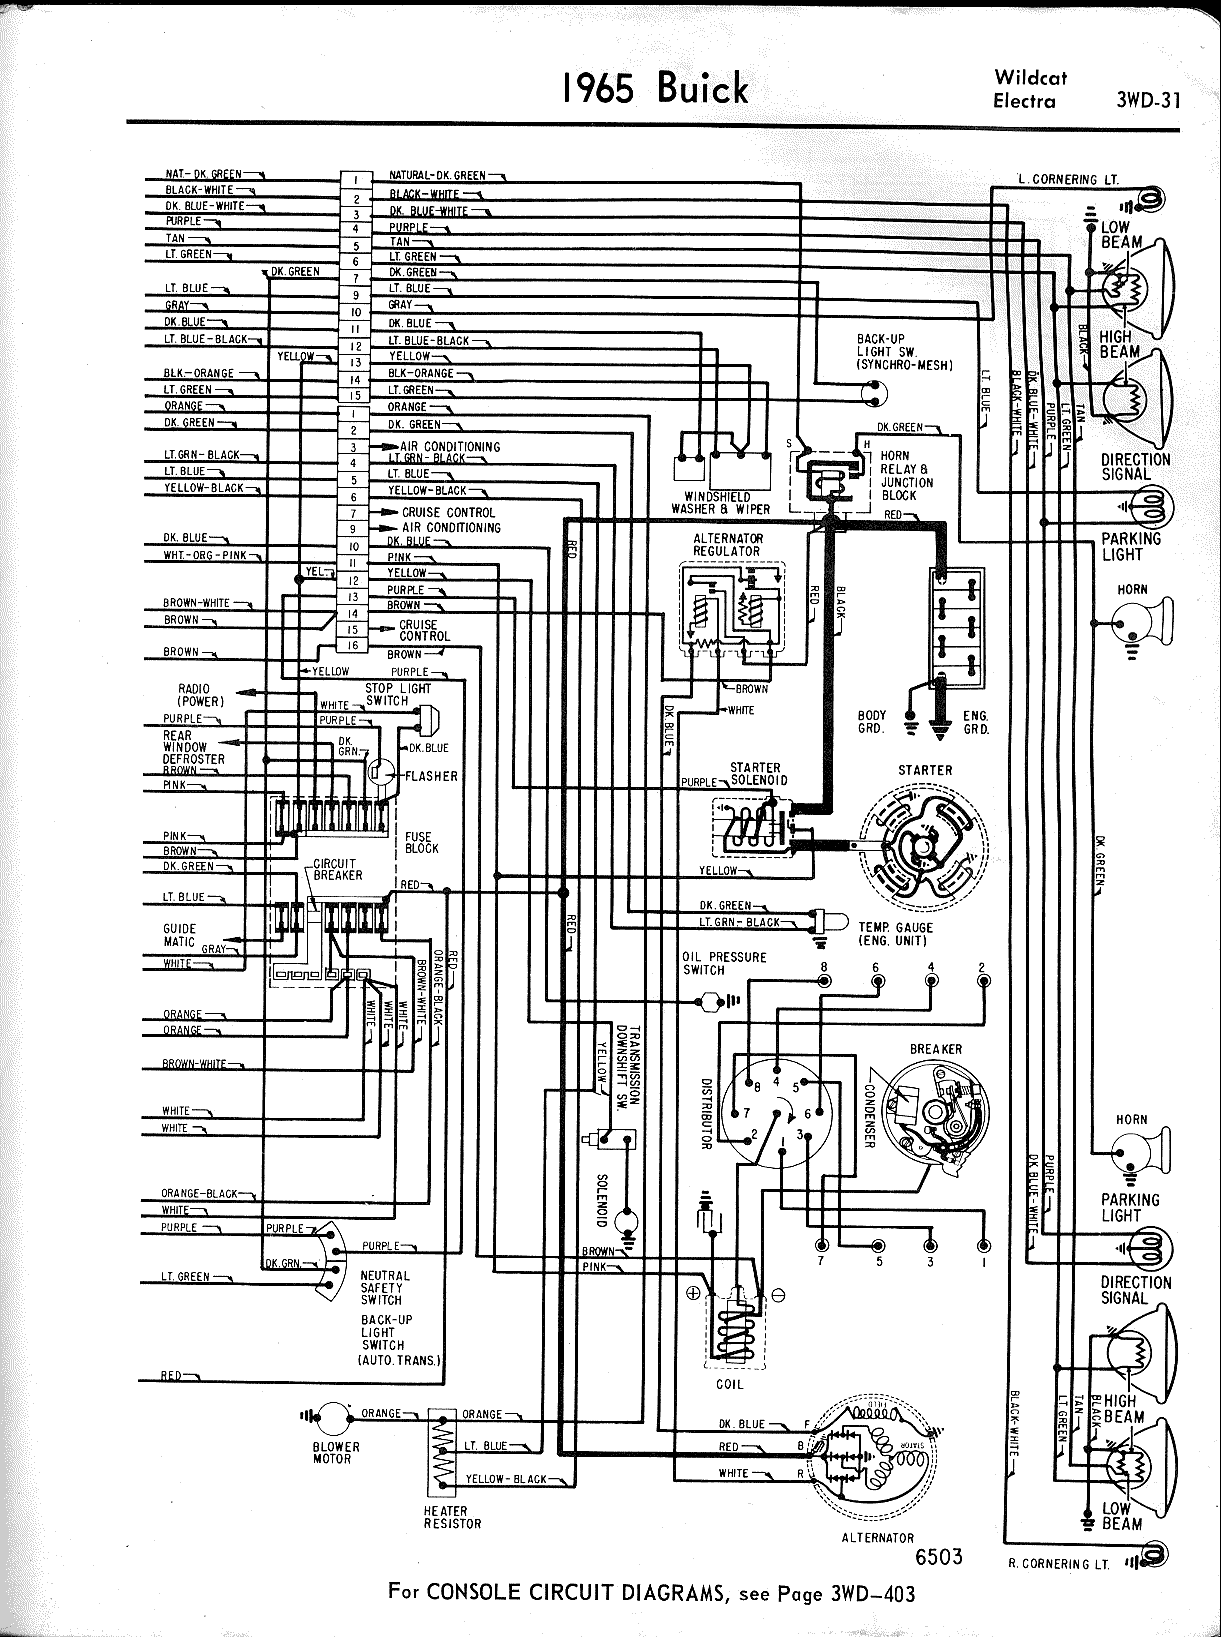 Light Switch Wiring Diagram 95 Buick Riv Trusted Seadoo Schematics 1966 Special Diy Diagrams U2022 Rh Aviomar Co Club Car Corvette